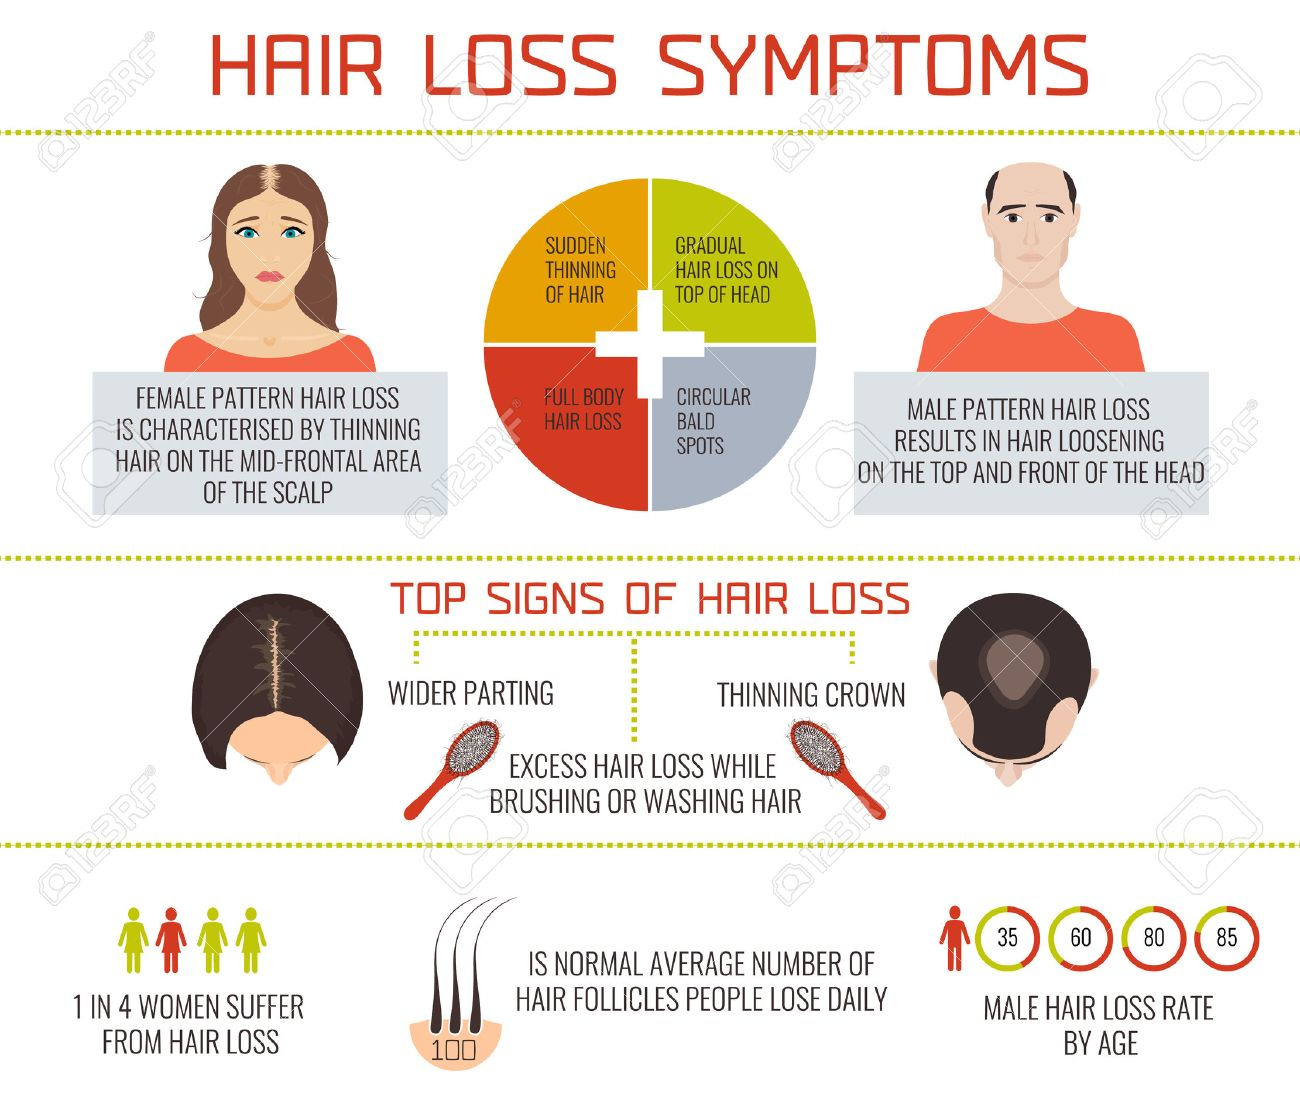 What are some causes of hair loss in men?